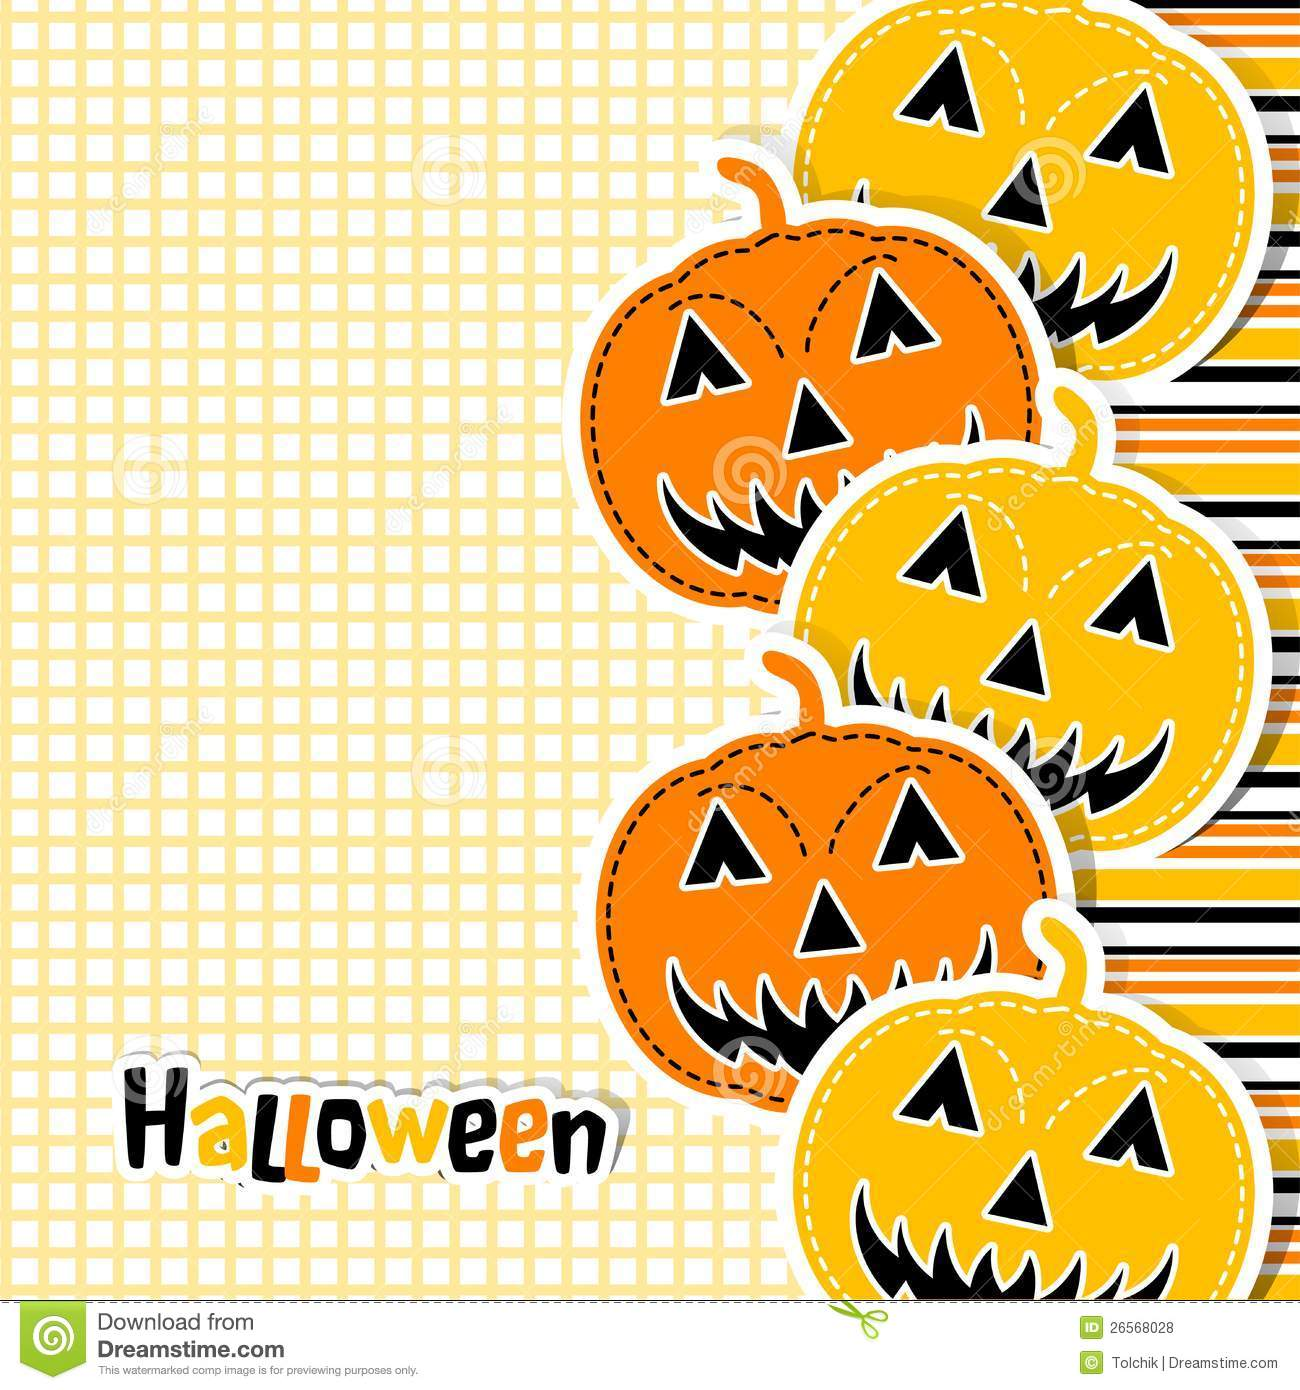 Halloween Card Template Stock VectorImage58534513